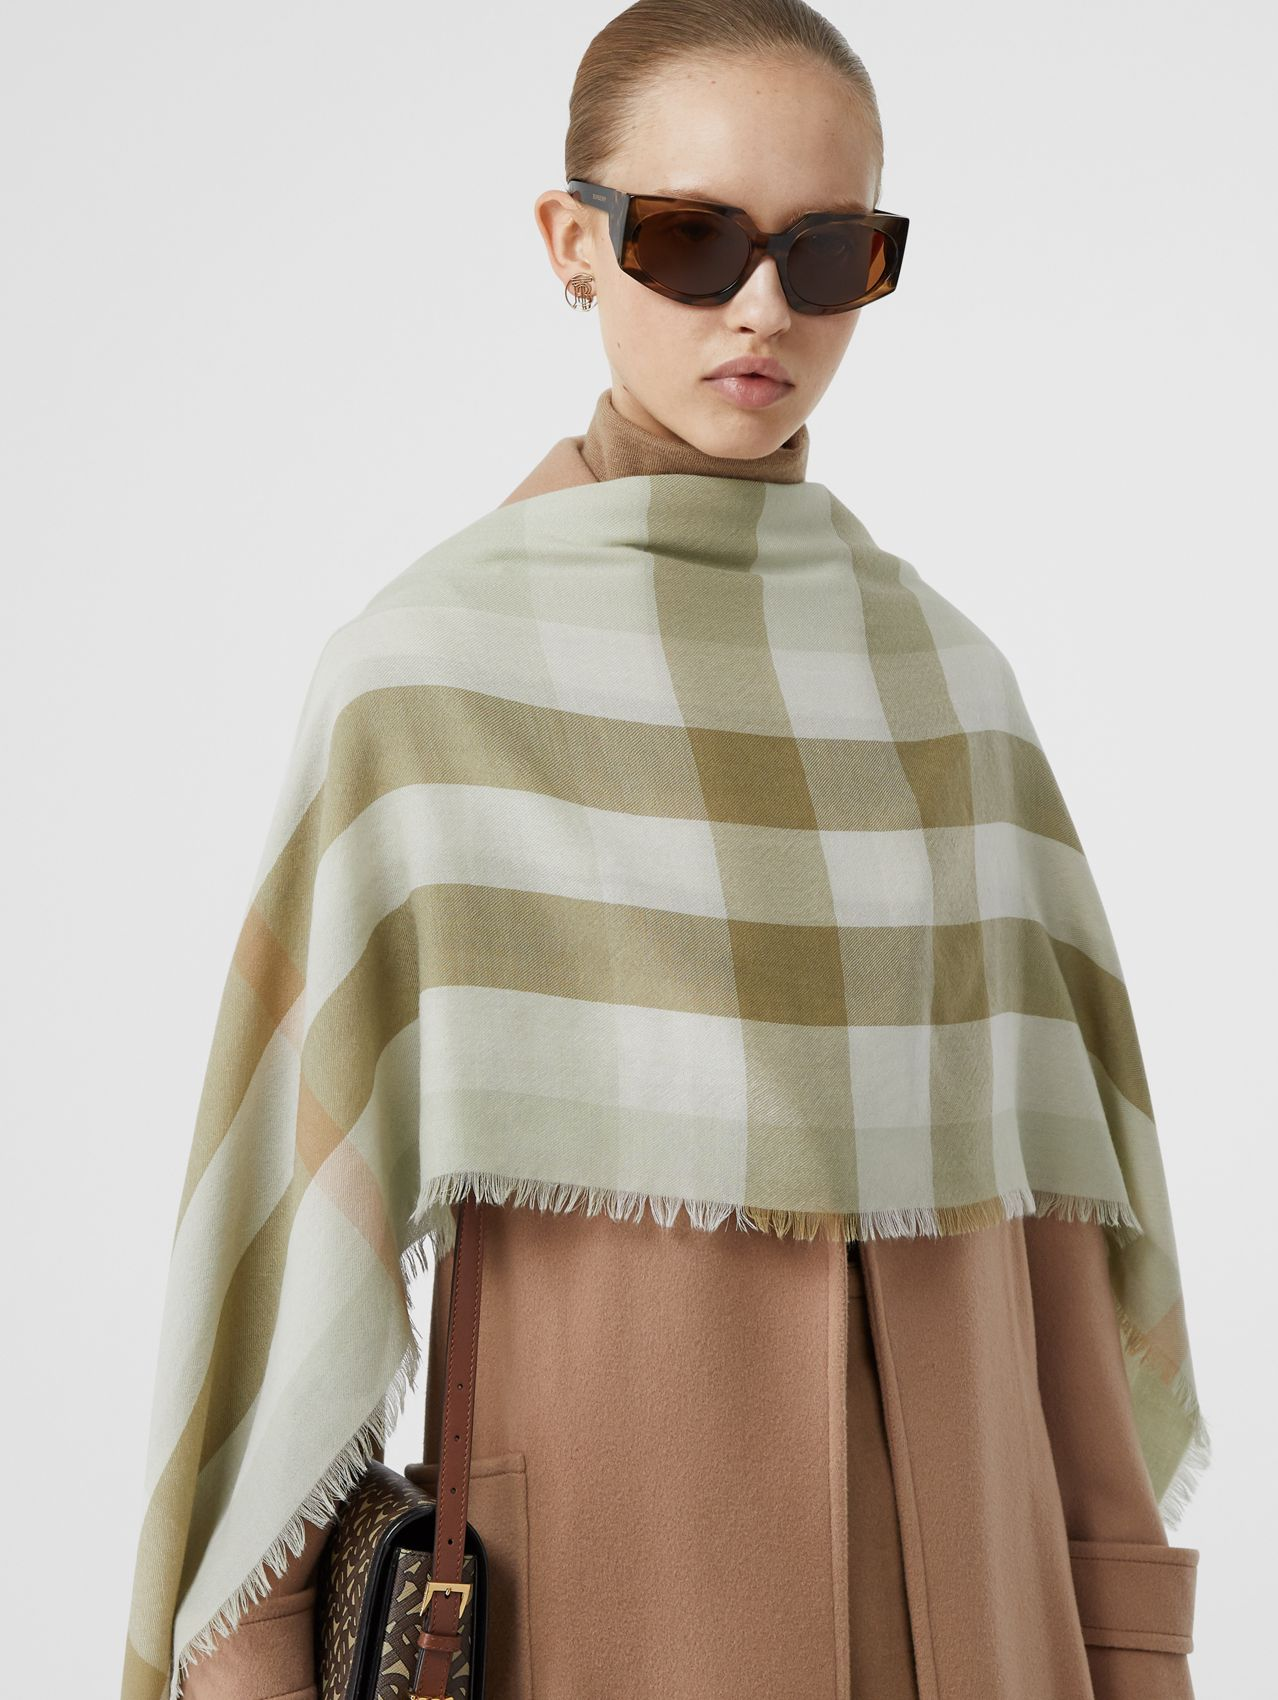 Lightweight Check Cashmere Scarf (Pale Apple Green)